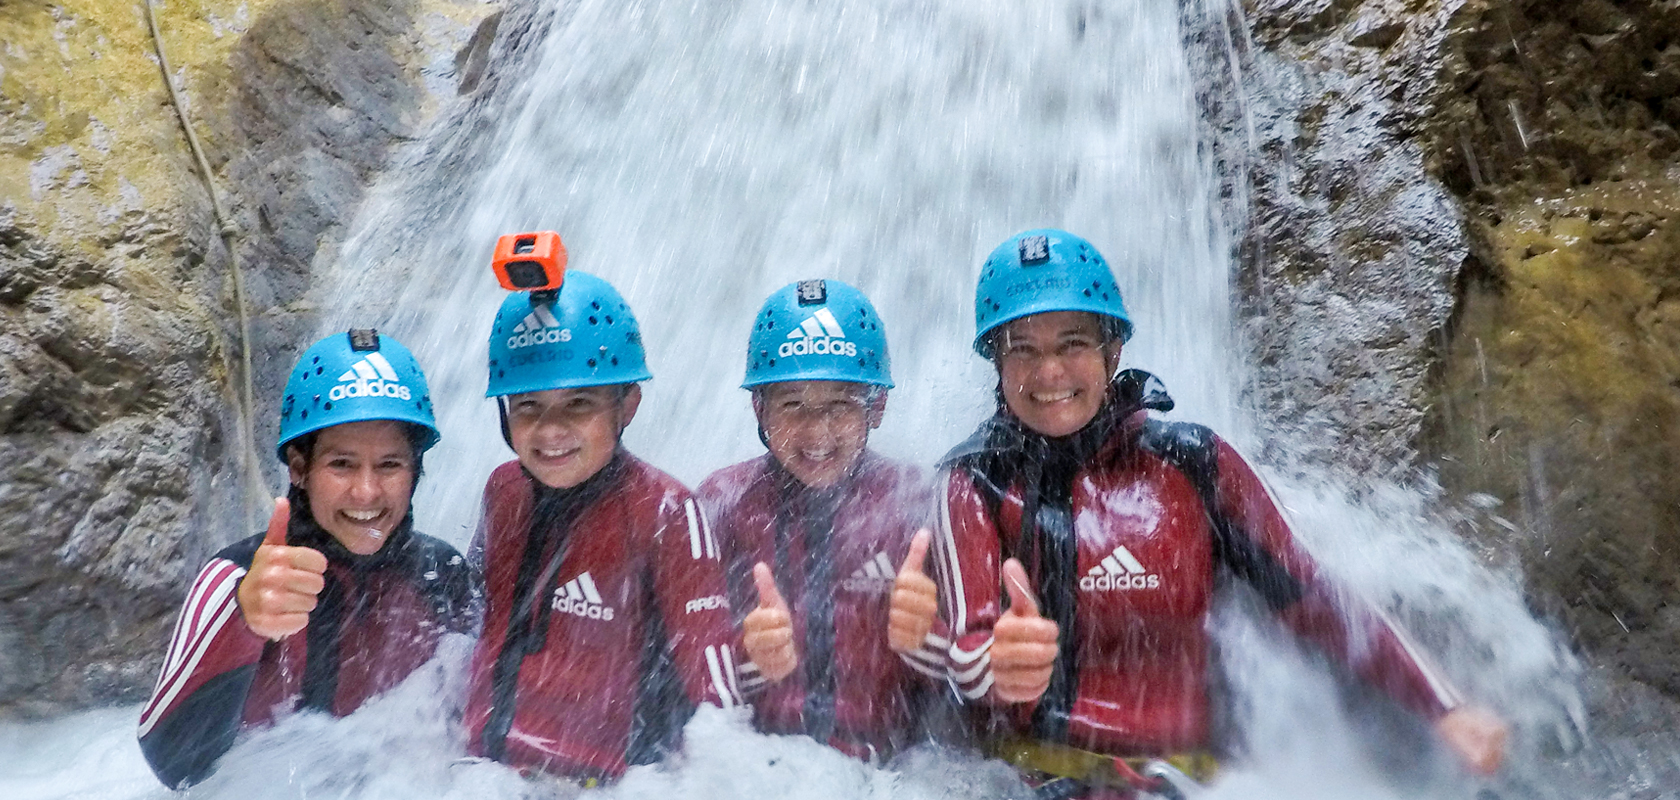 Canyoning: Teamwork makes the dream work